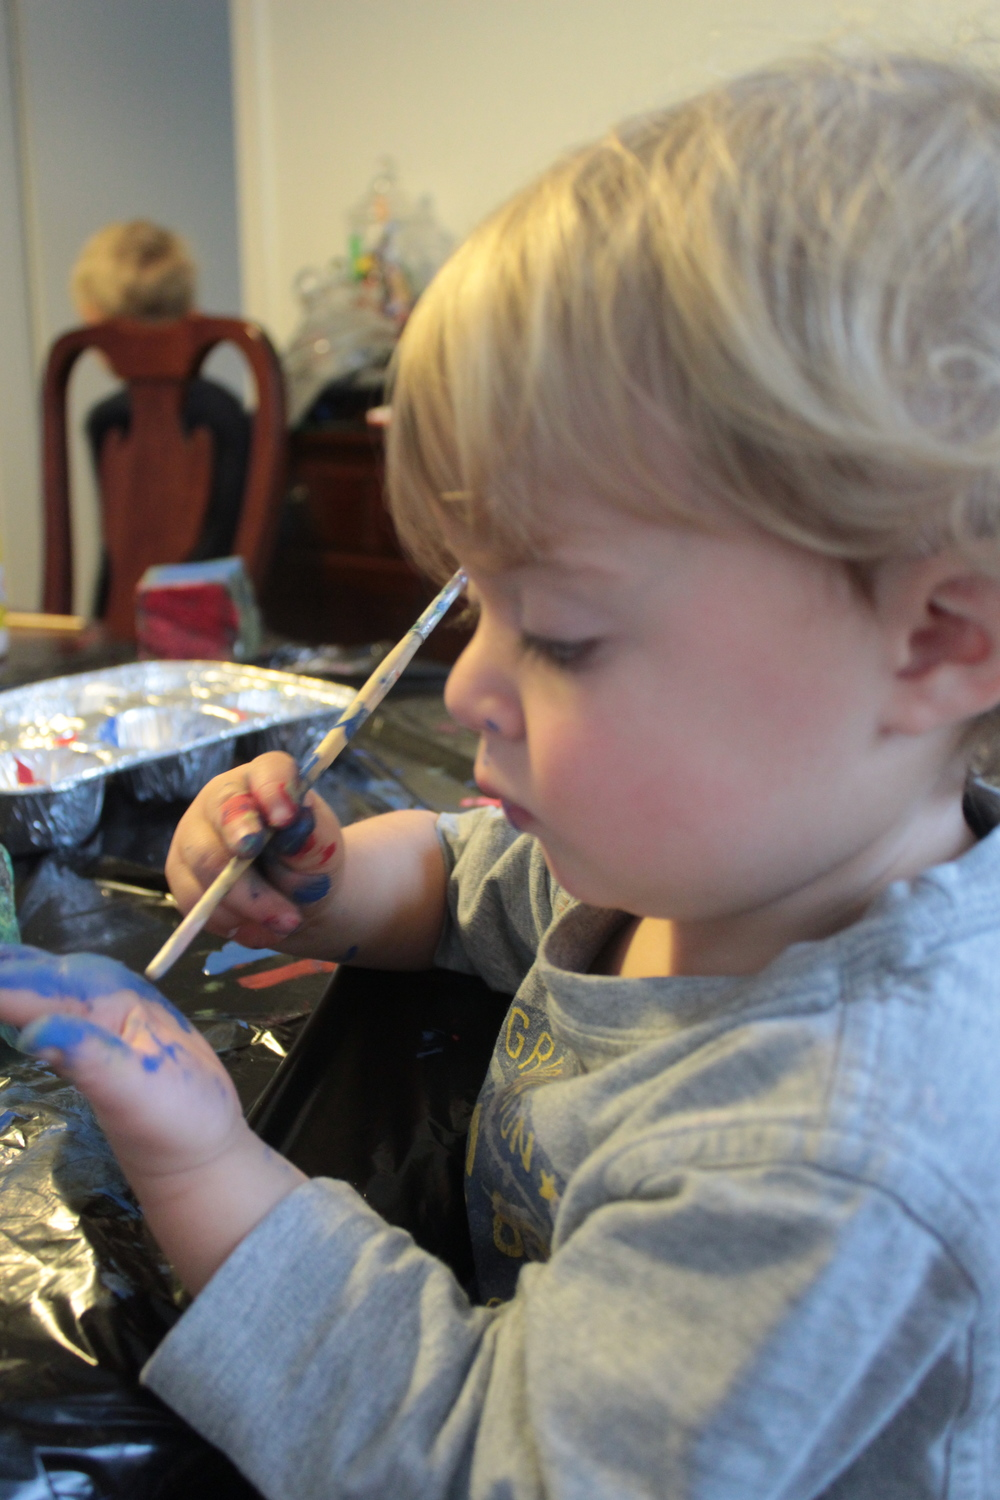 Baby painting.